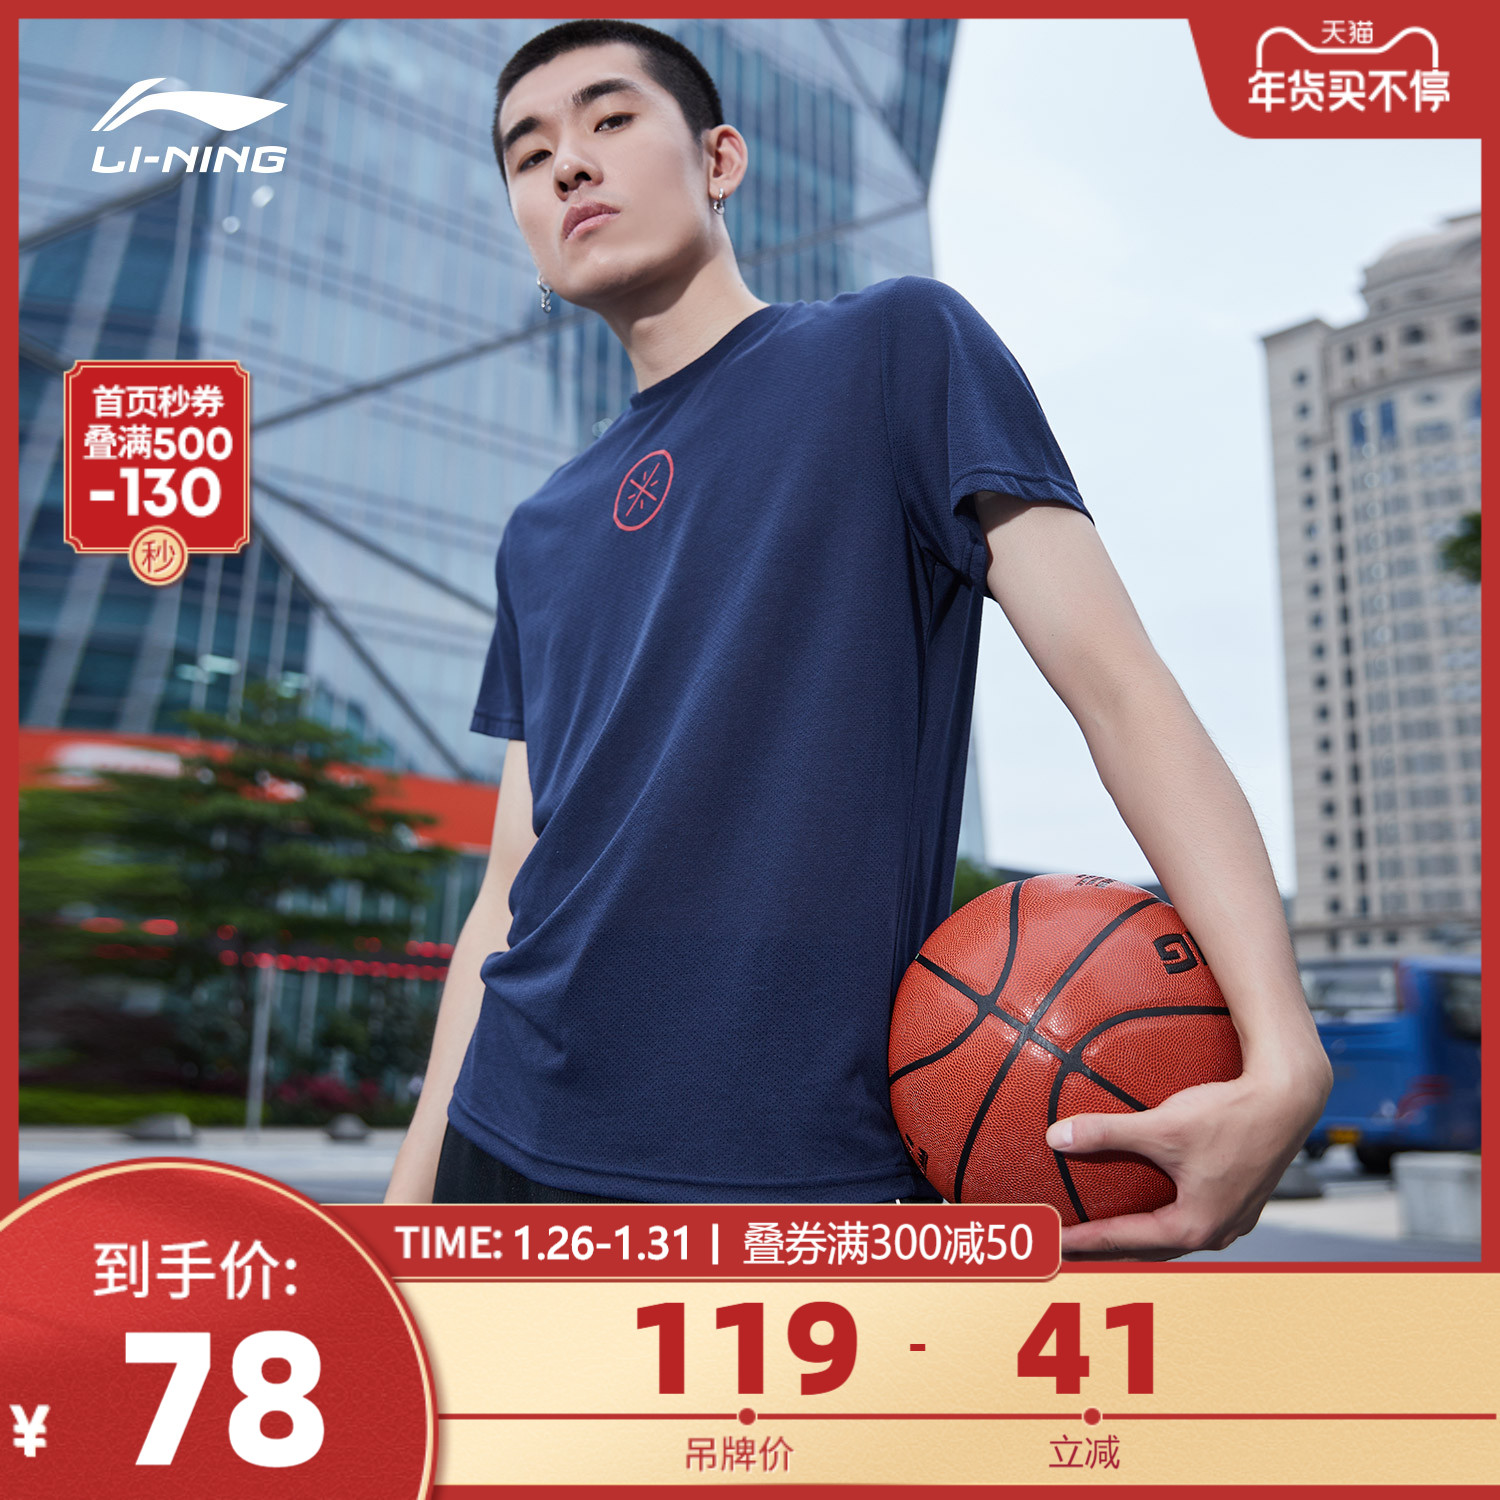 Li Ning short-sleeved T-shirt men's Wade compassionate summer loose quick-drying breathable fitness flagship sports training top